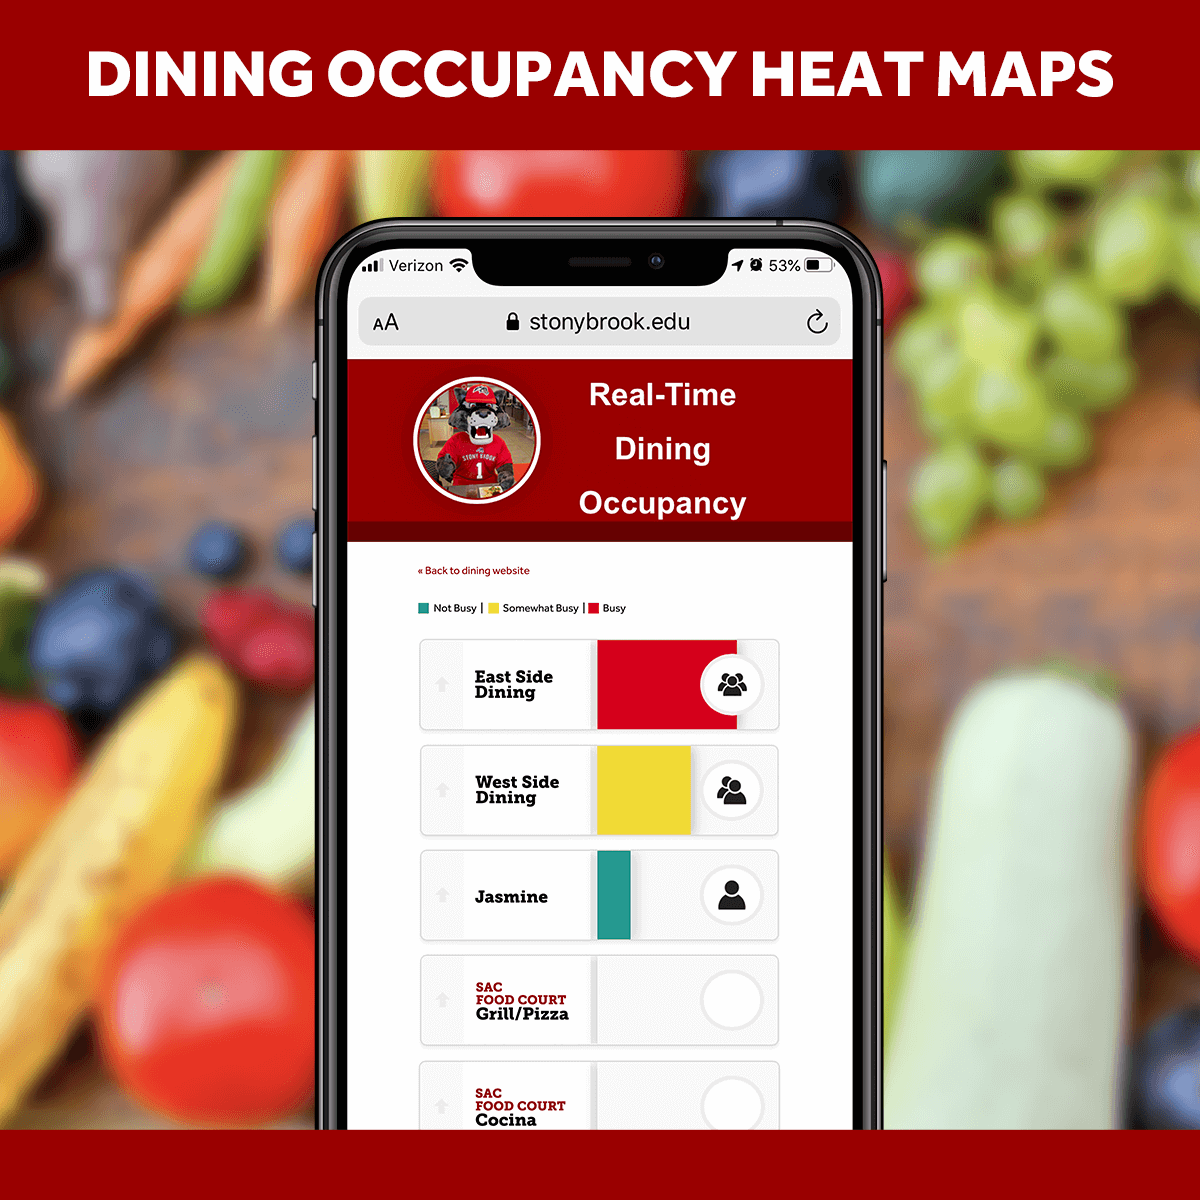 View heat maps of occupancy of dining locations before you go!